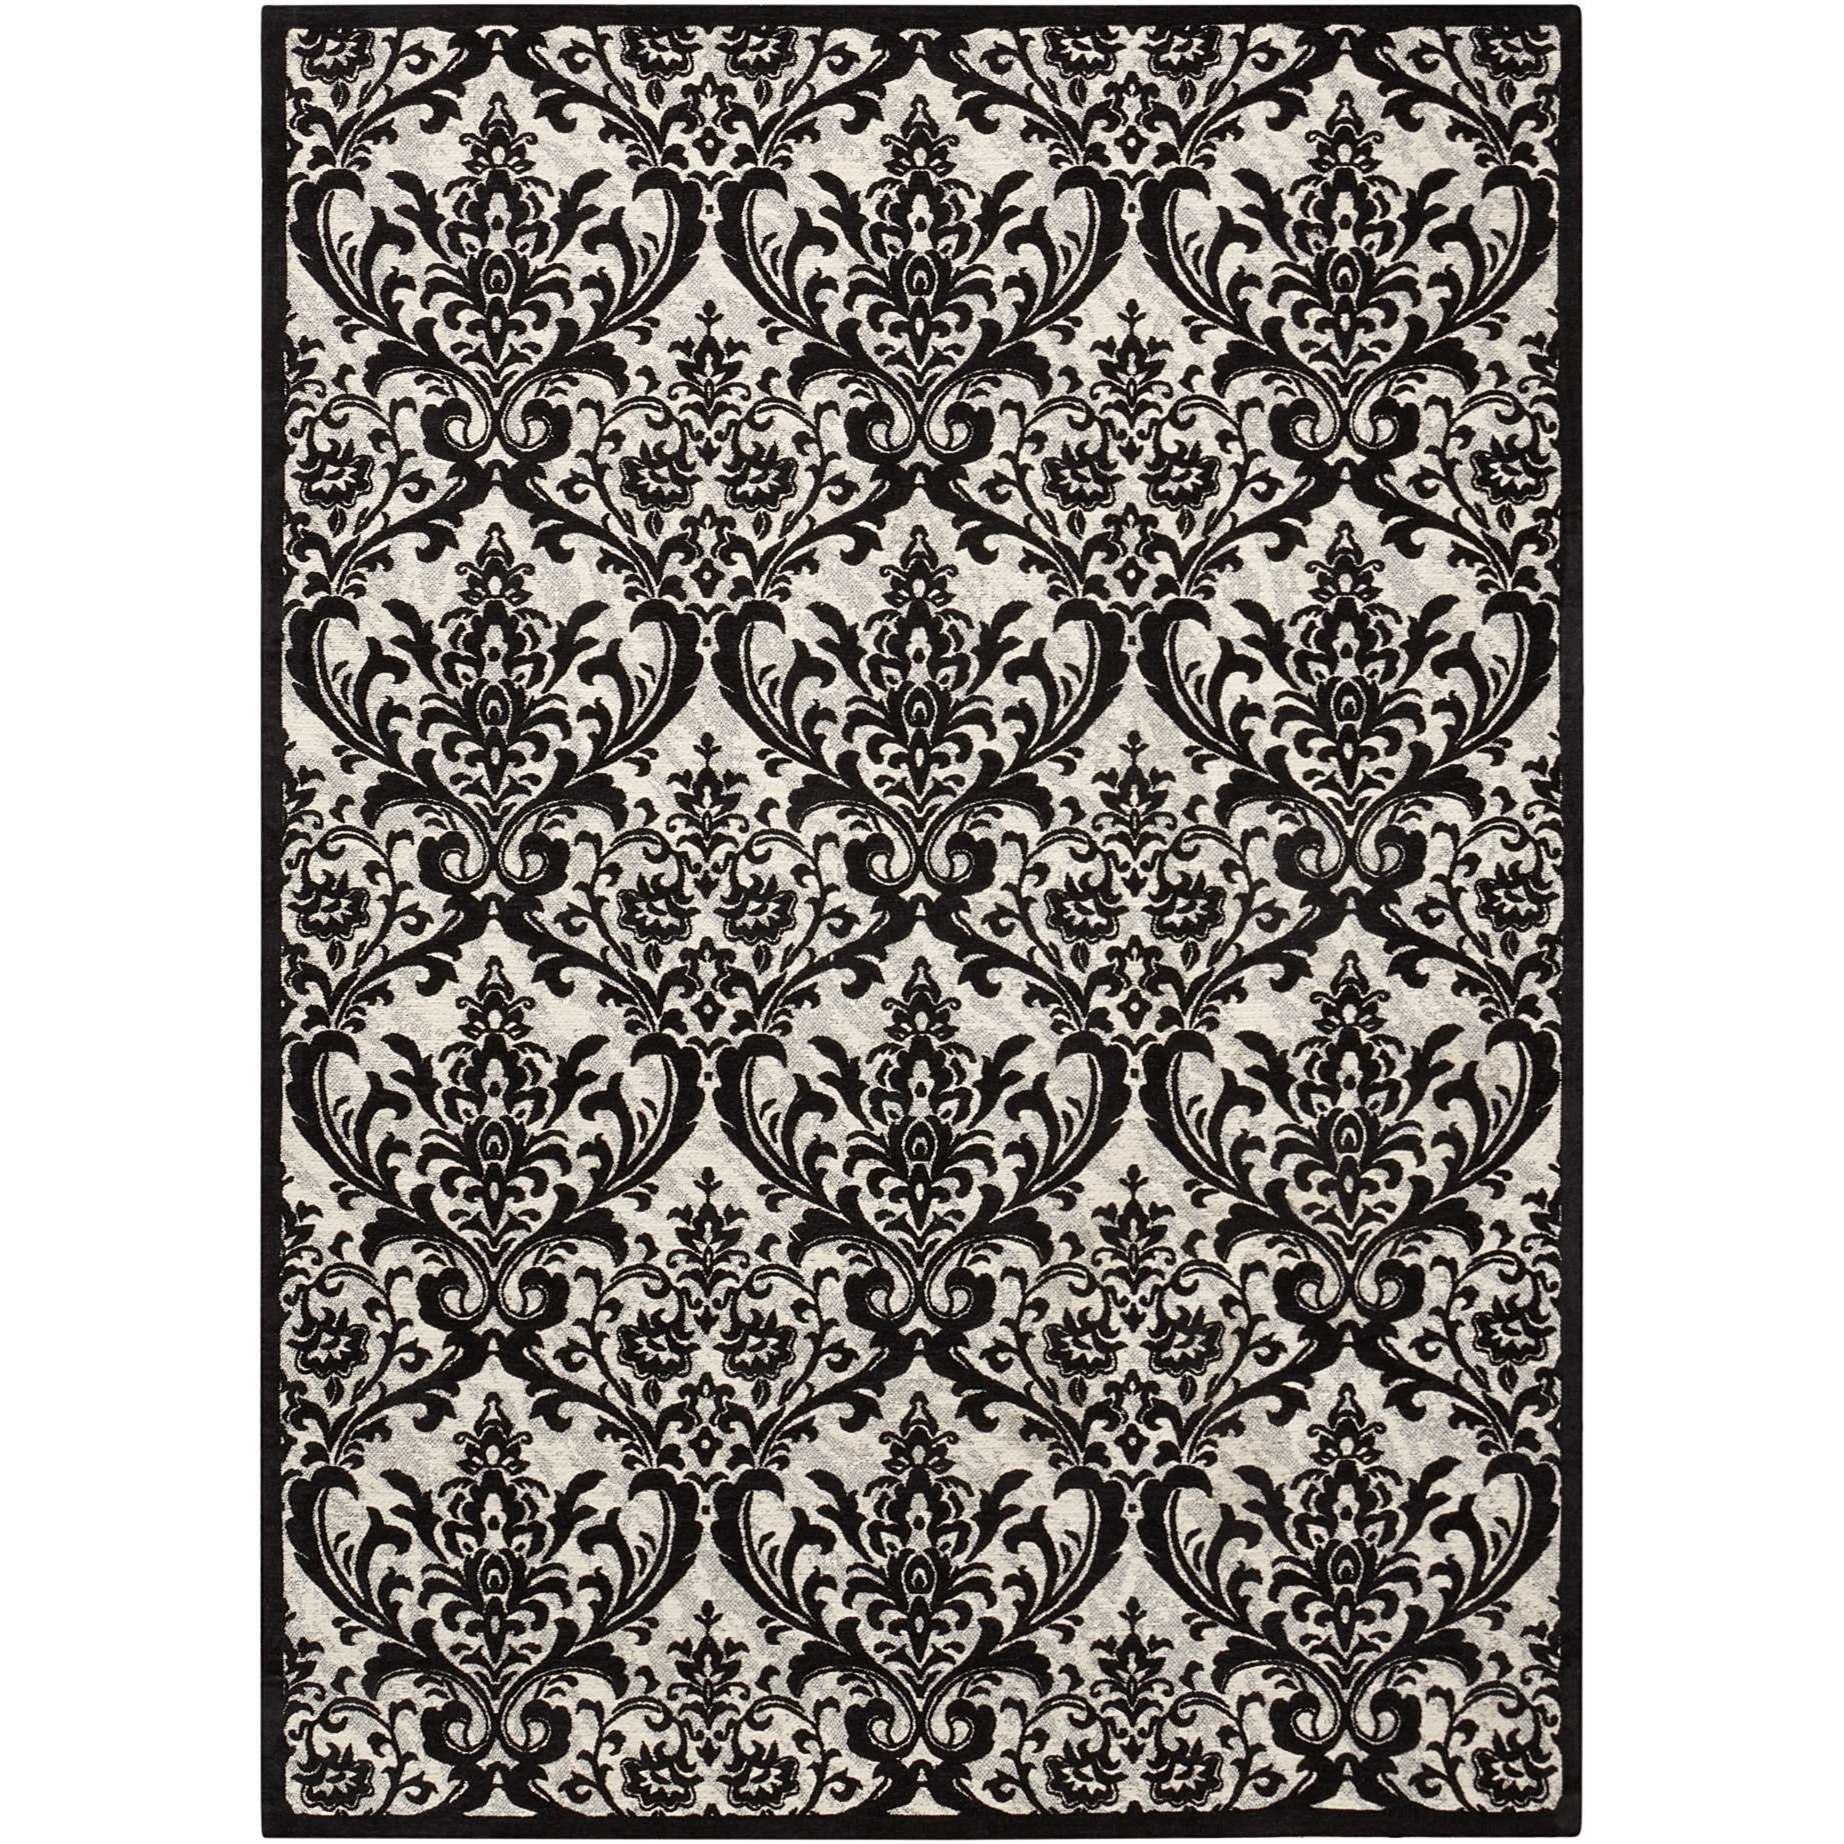 Damask 5' X 7' Black/White Rug by Nourison at Home Collections Furniture